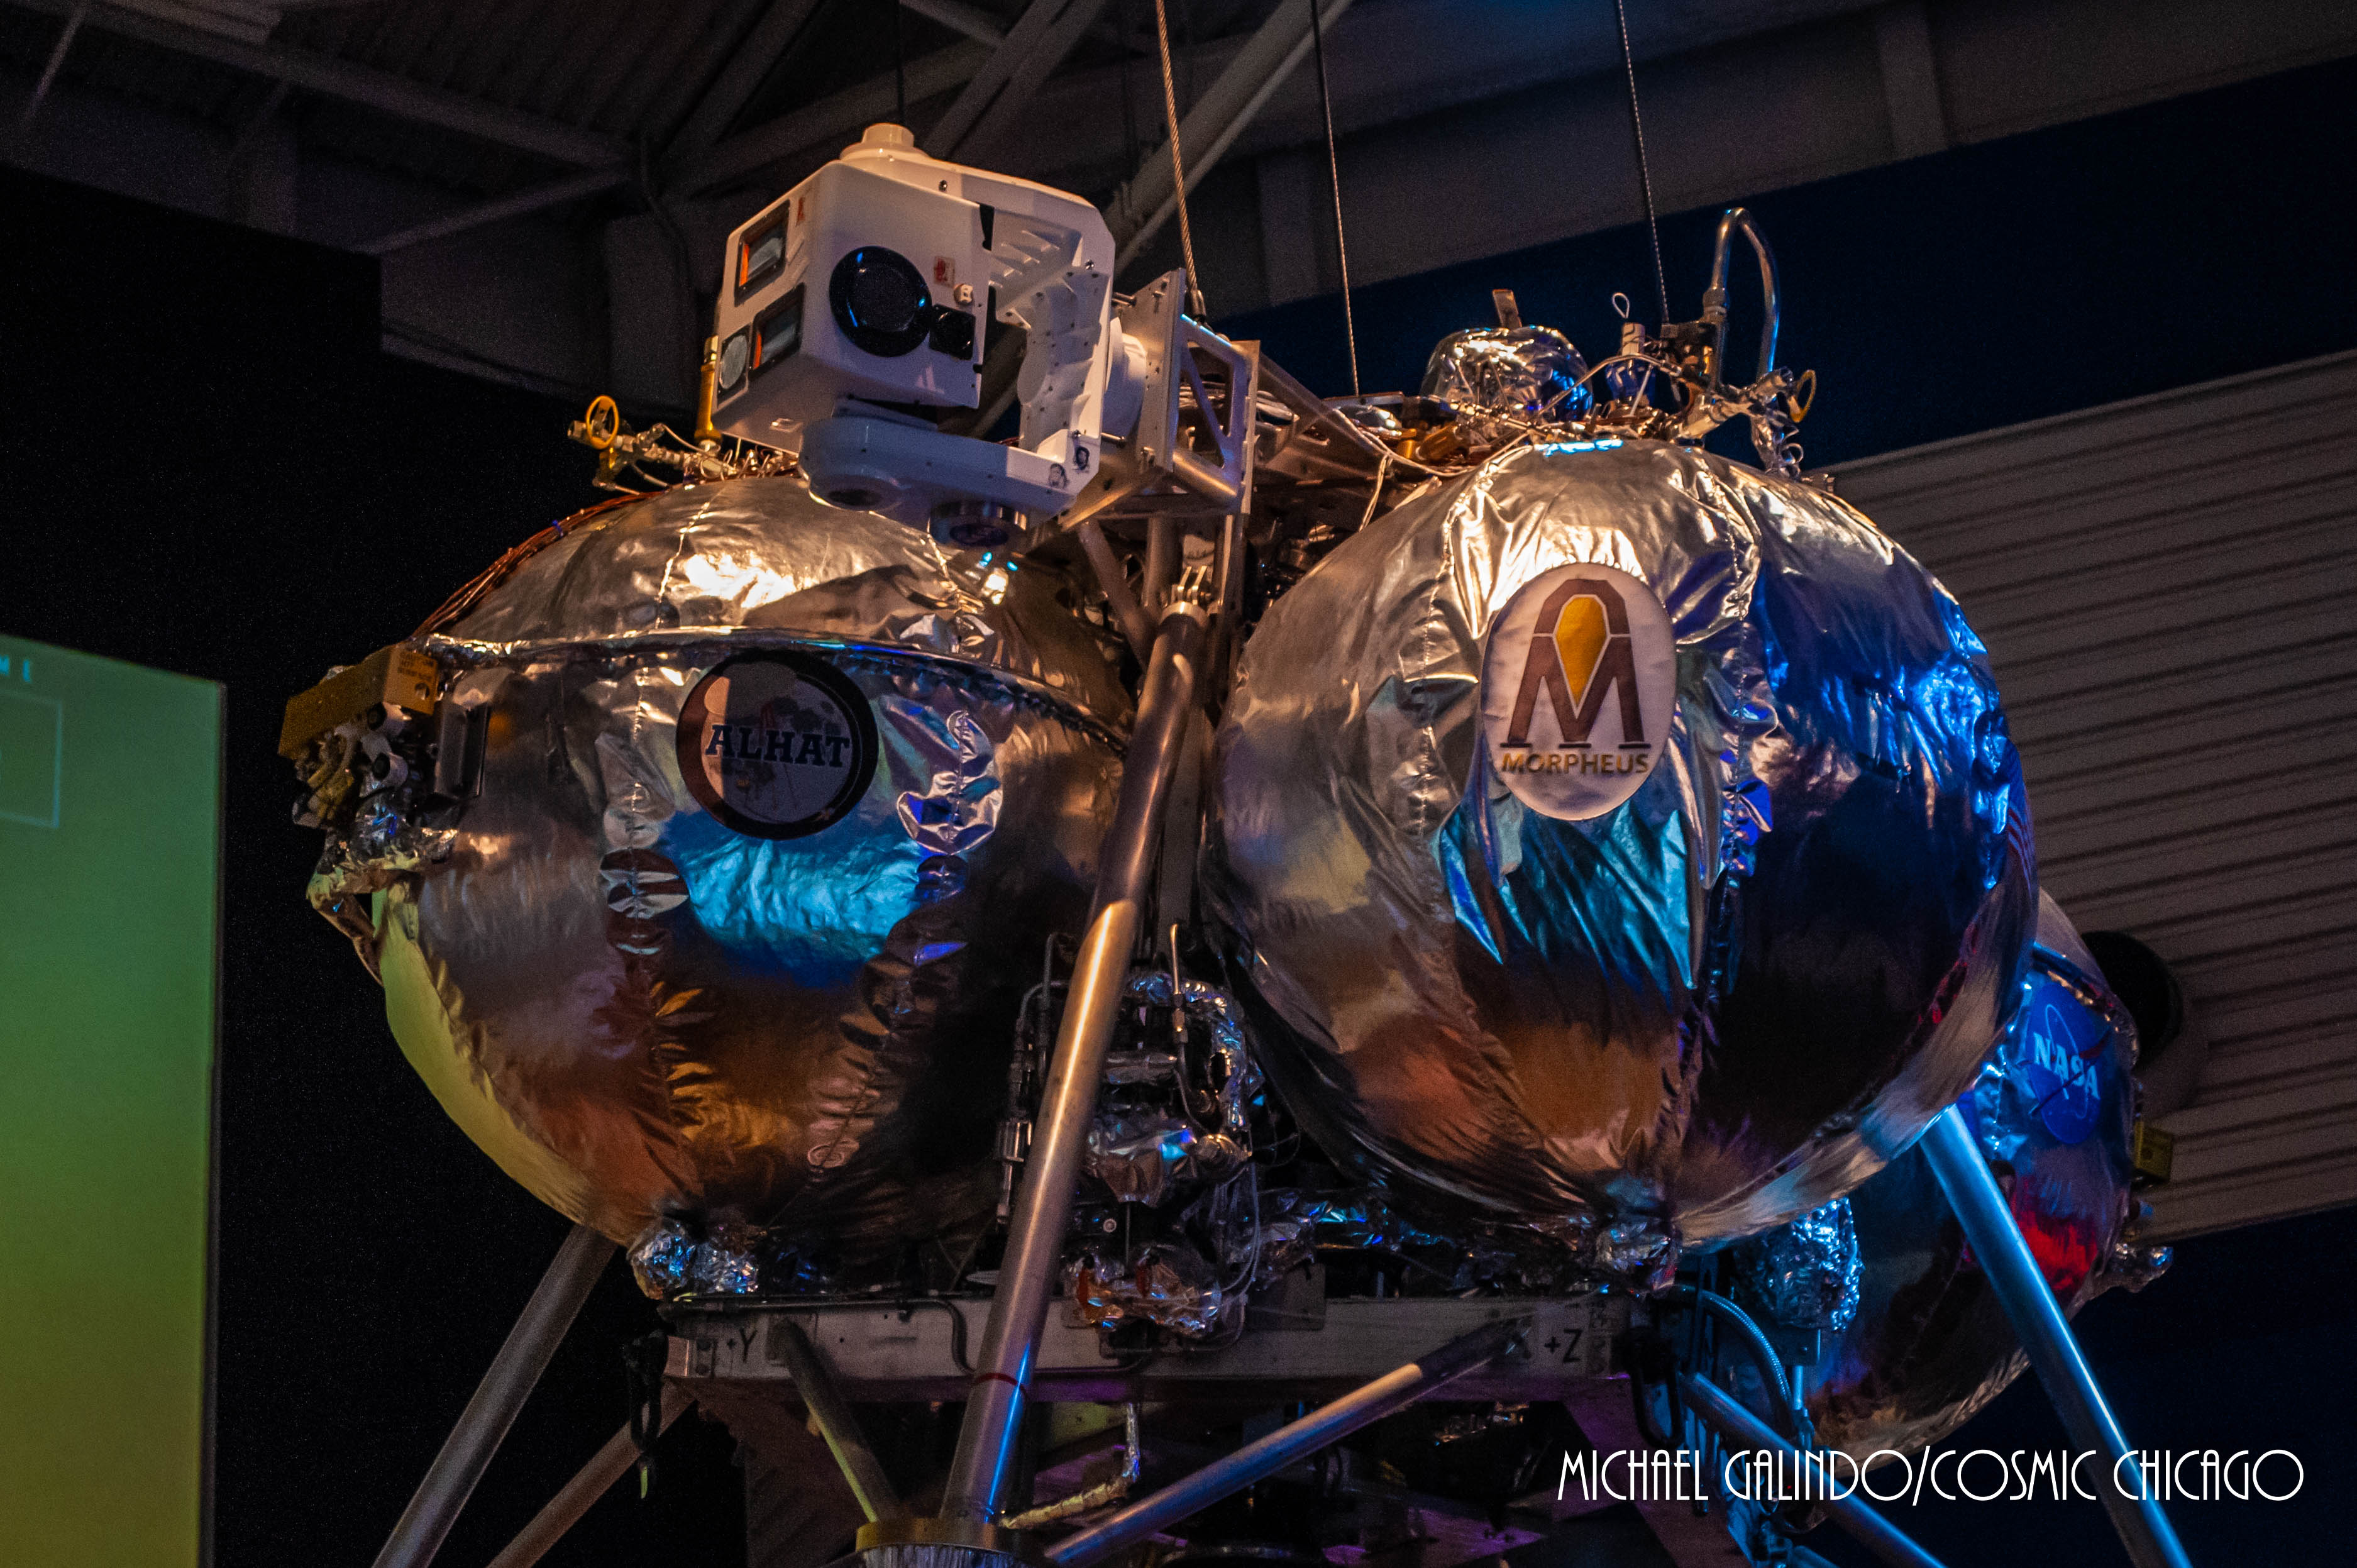 The NASA's Morpheus robotic lander on display at Space Center Houston